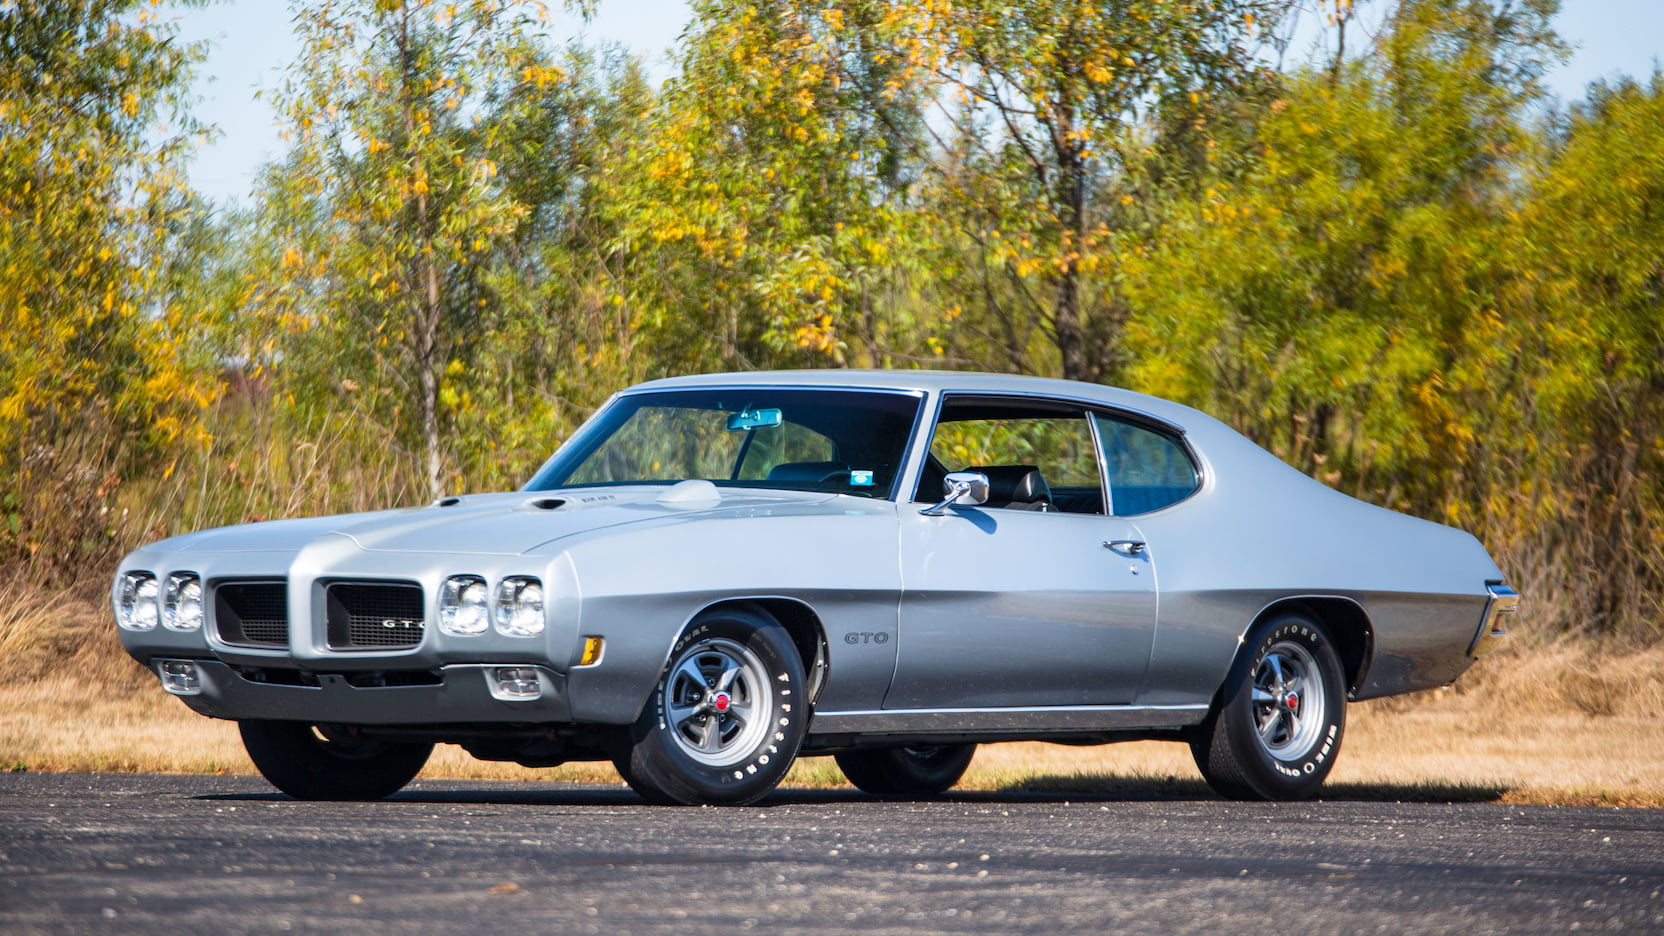 1970 Pontiac GTO Ram Air IV Front and side